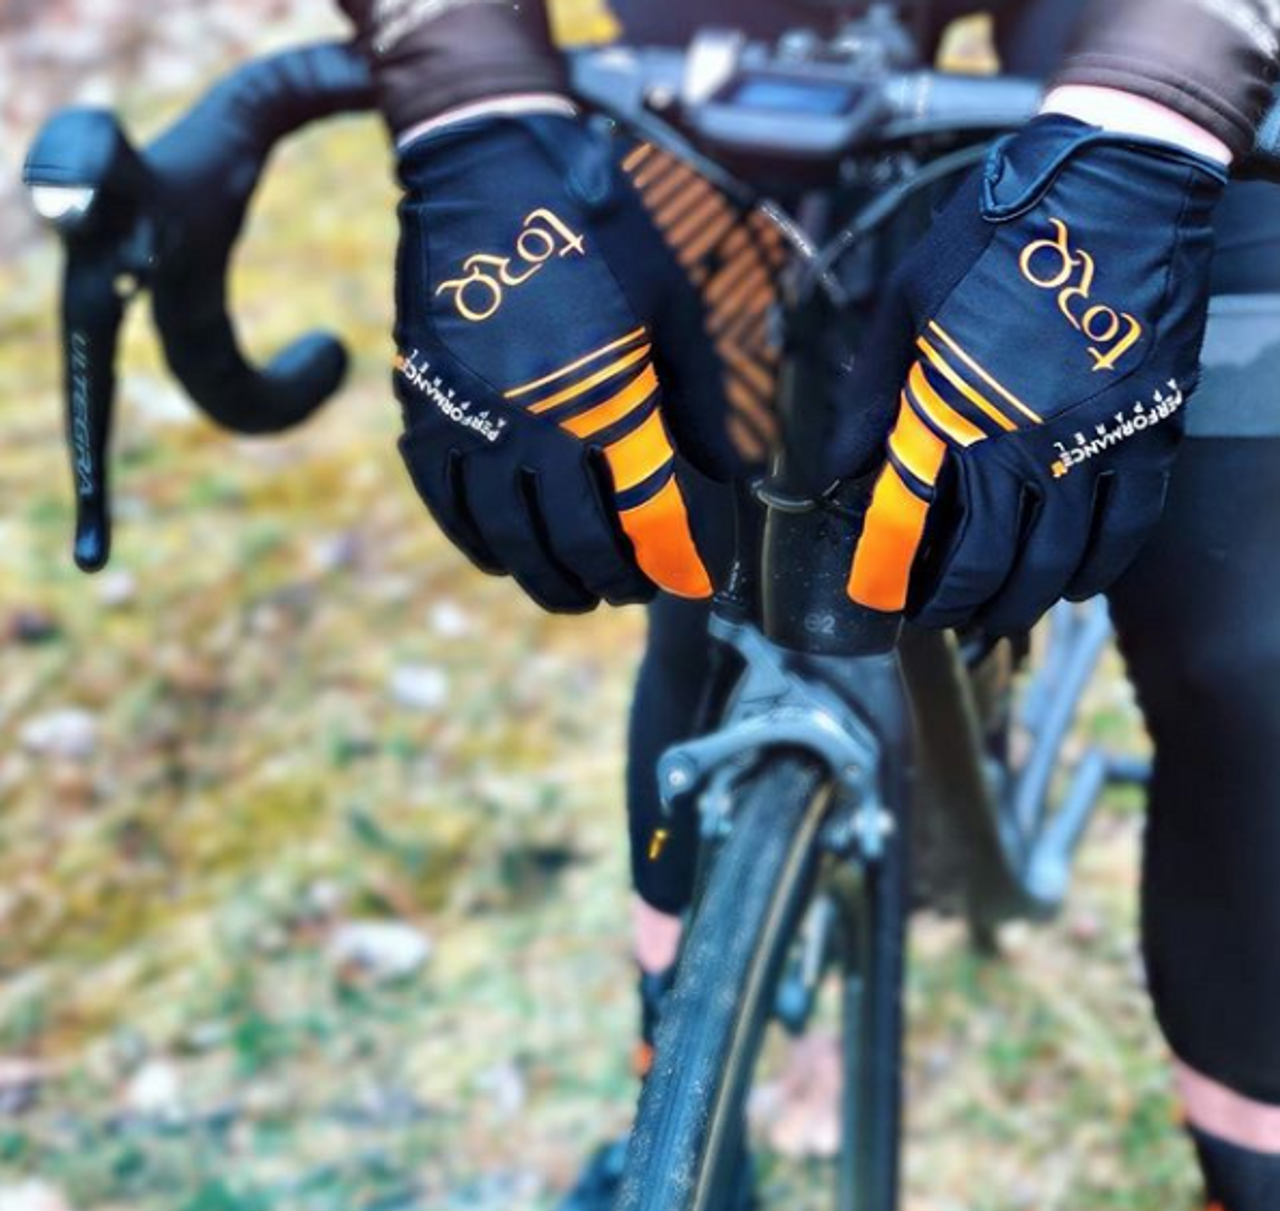 TORQ Summer (3 Season) Gloves